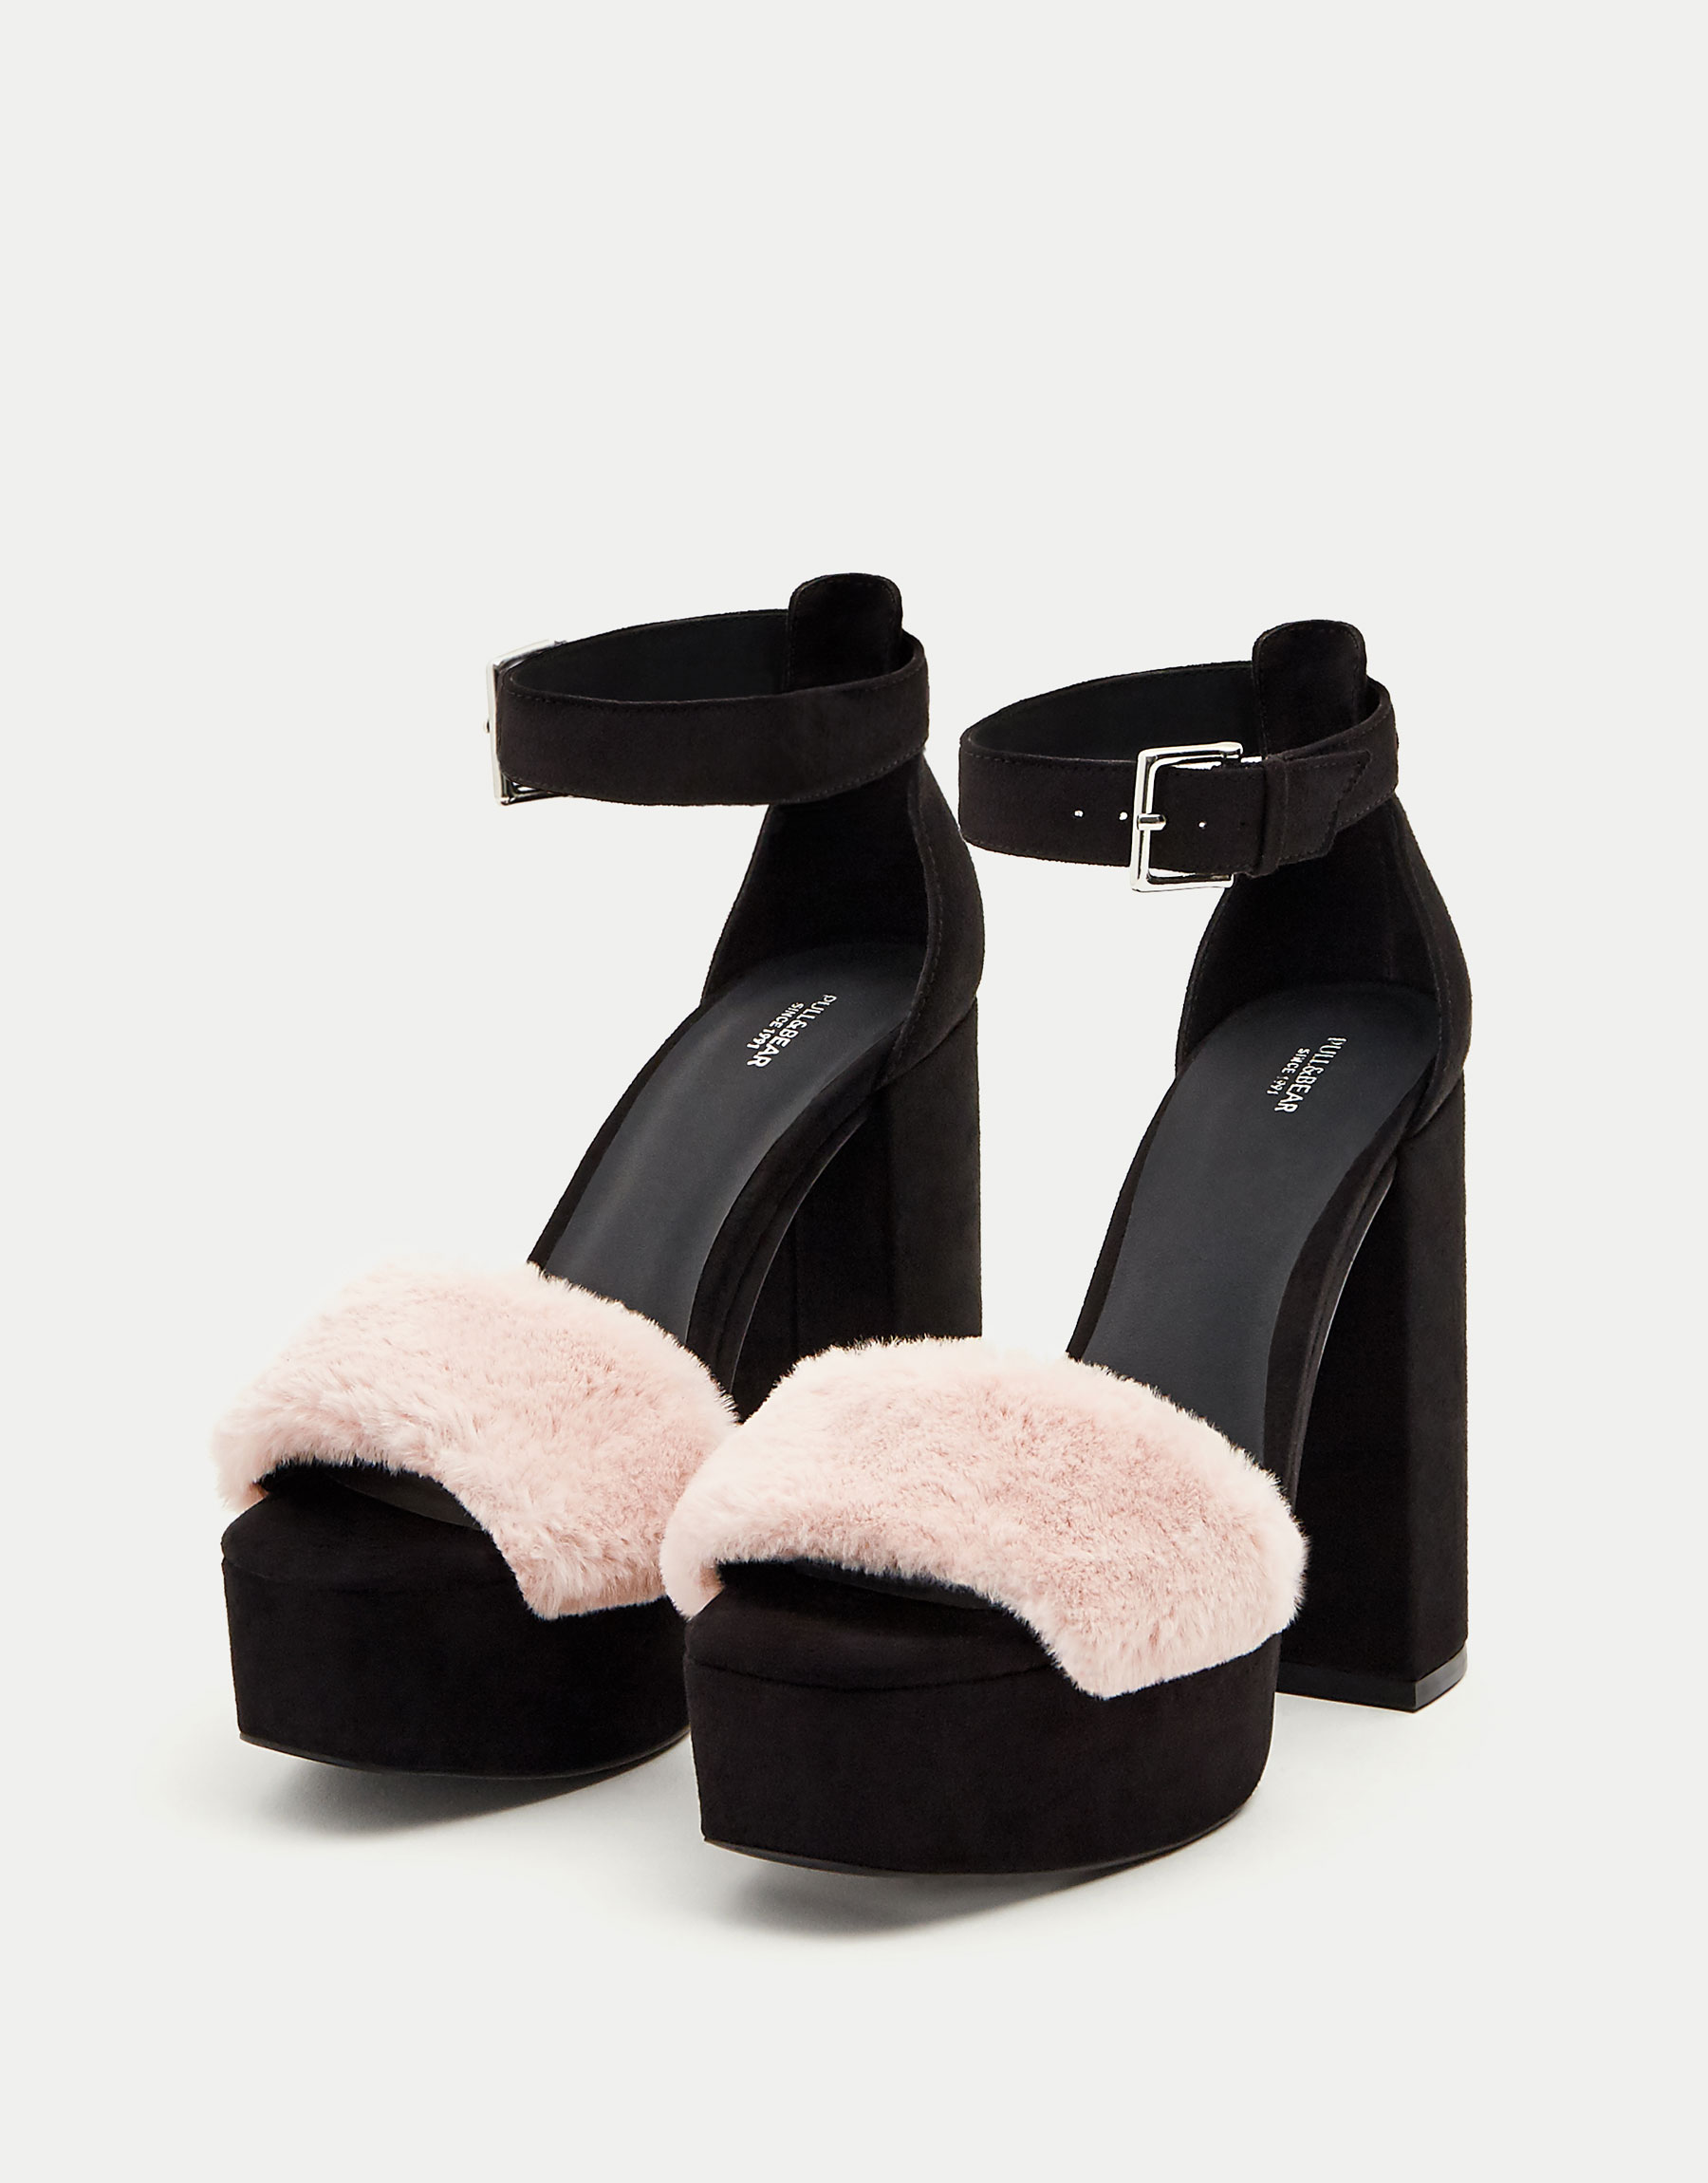 High heel sandals with faux fur